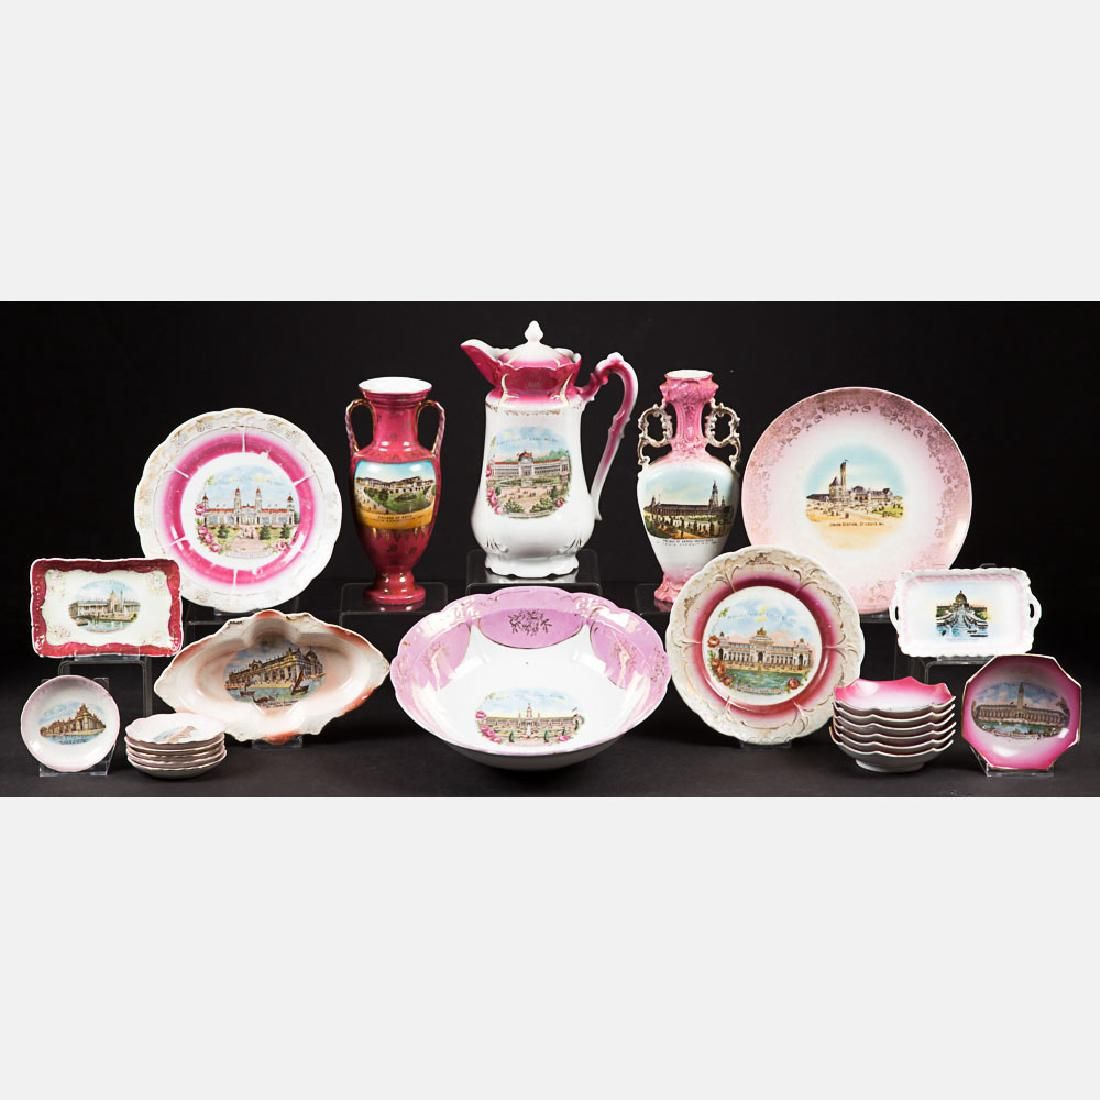 A Miscellaneous Collection of Twenty-Three Porcelain